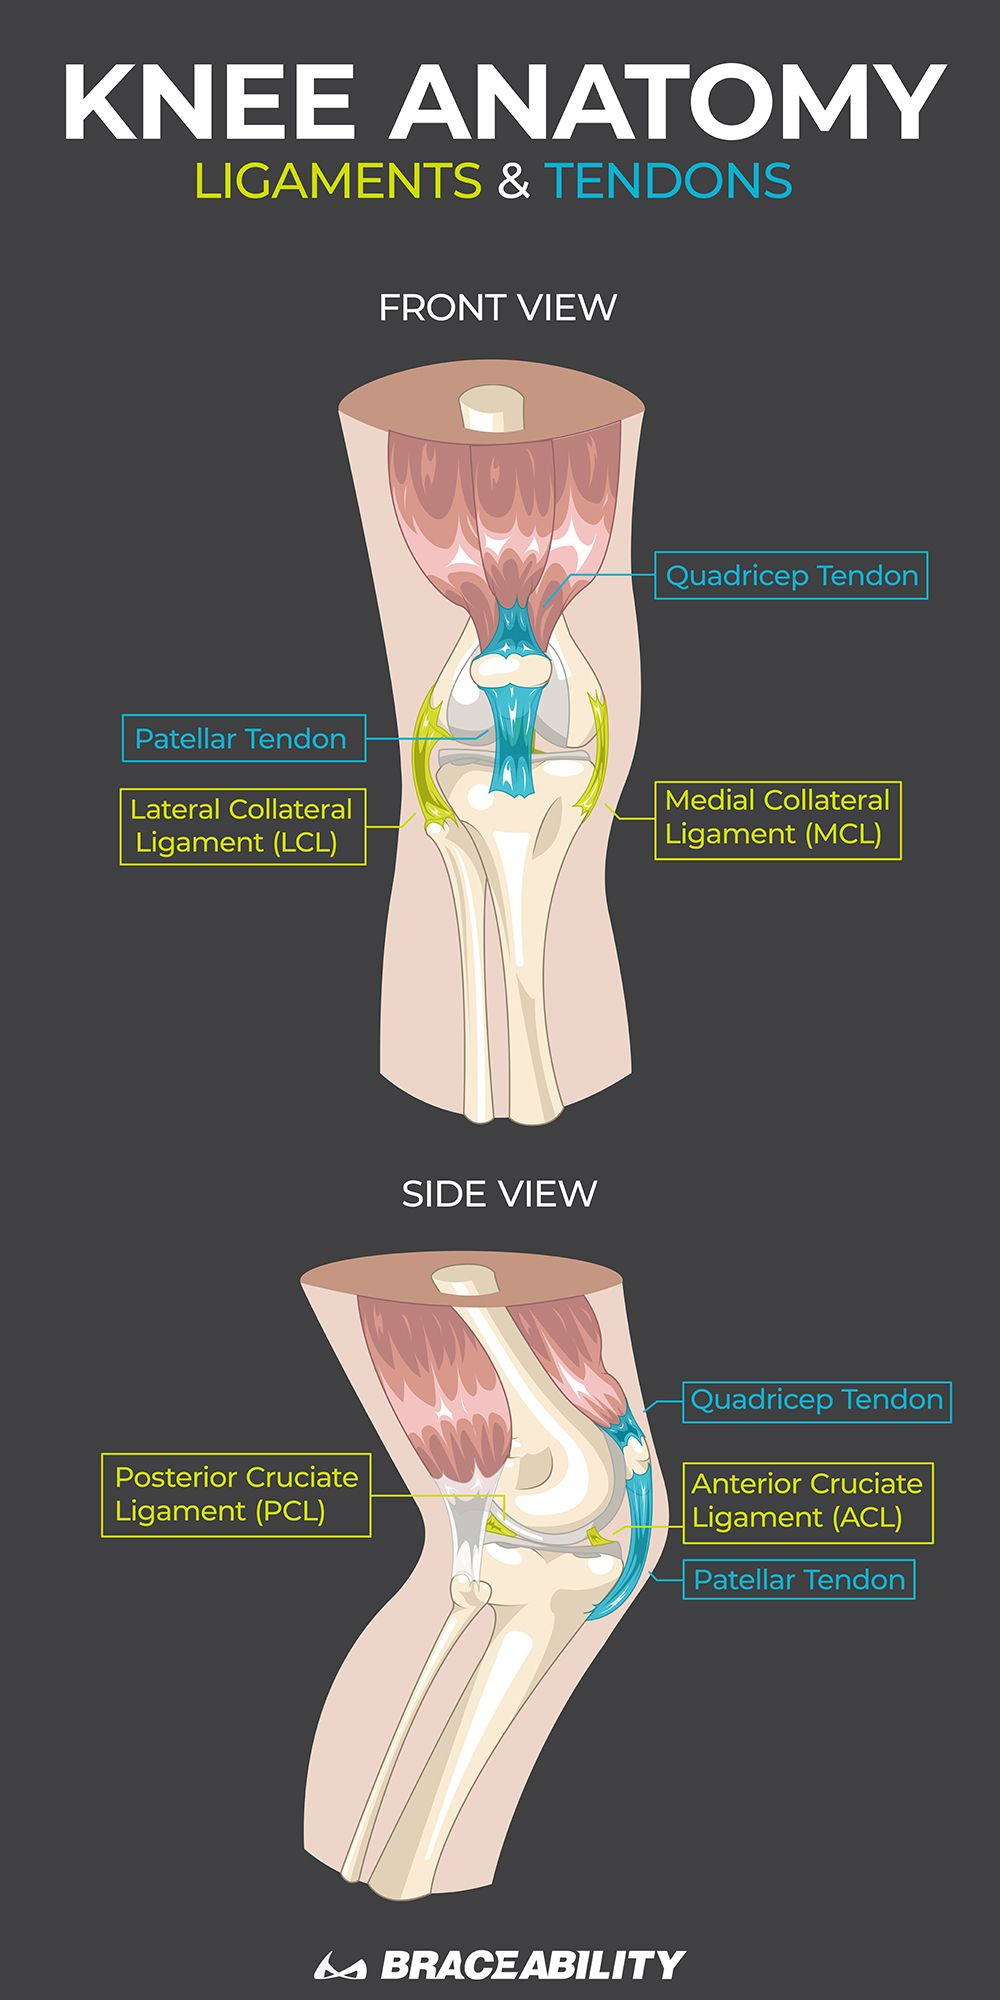 Pain Behind the Knee / In Back of Knee